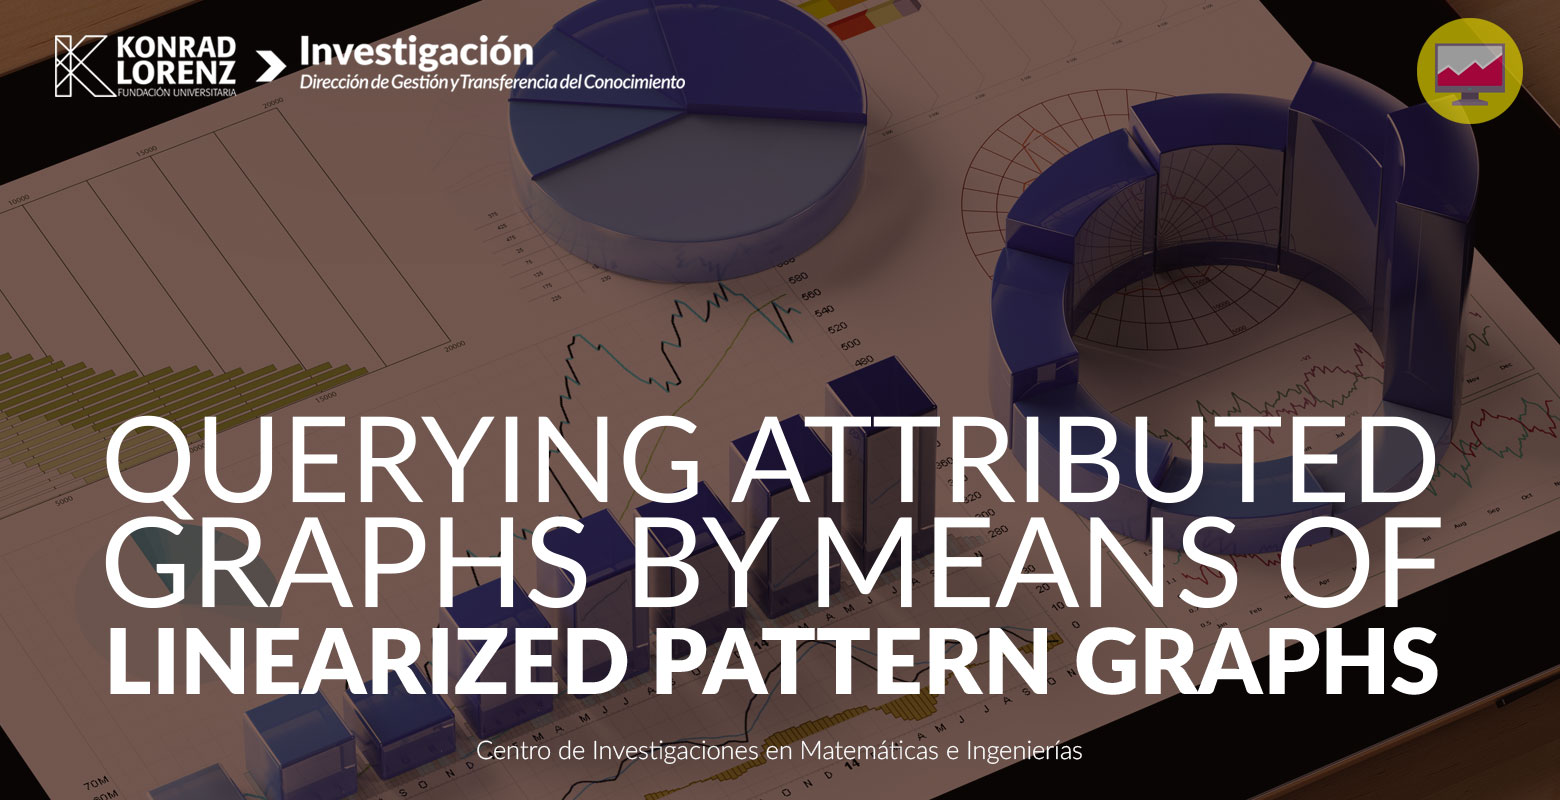 Querying attributed graphs by means of linearized pattern graphs